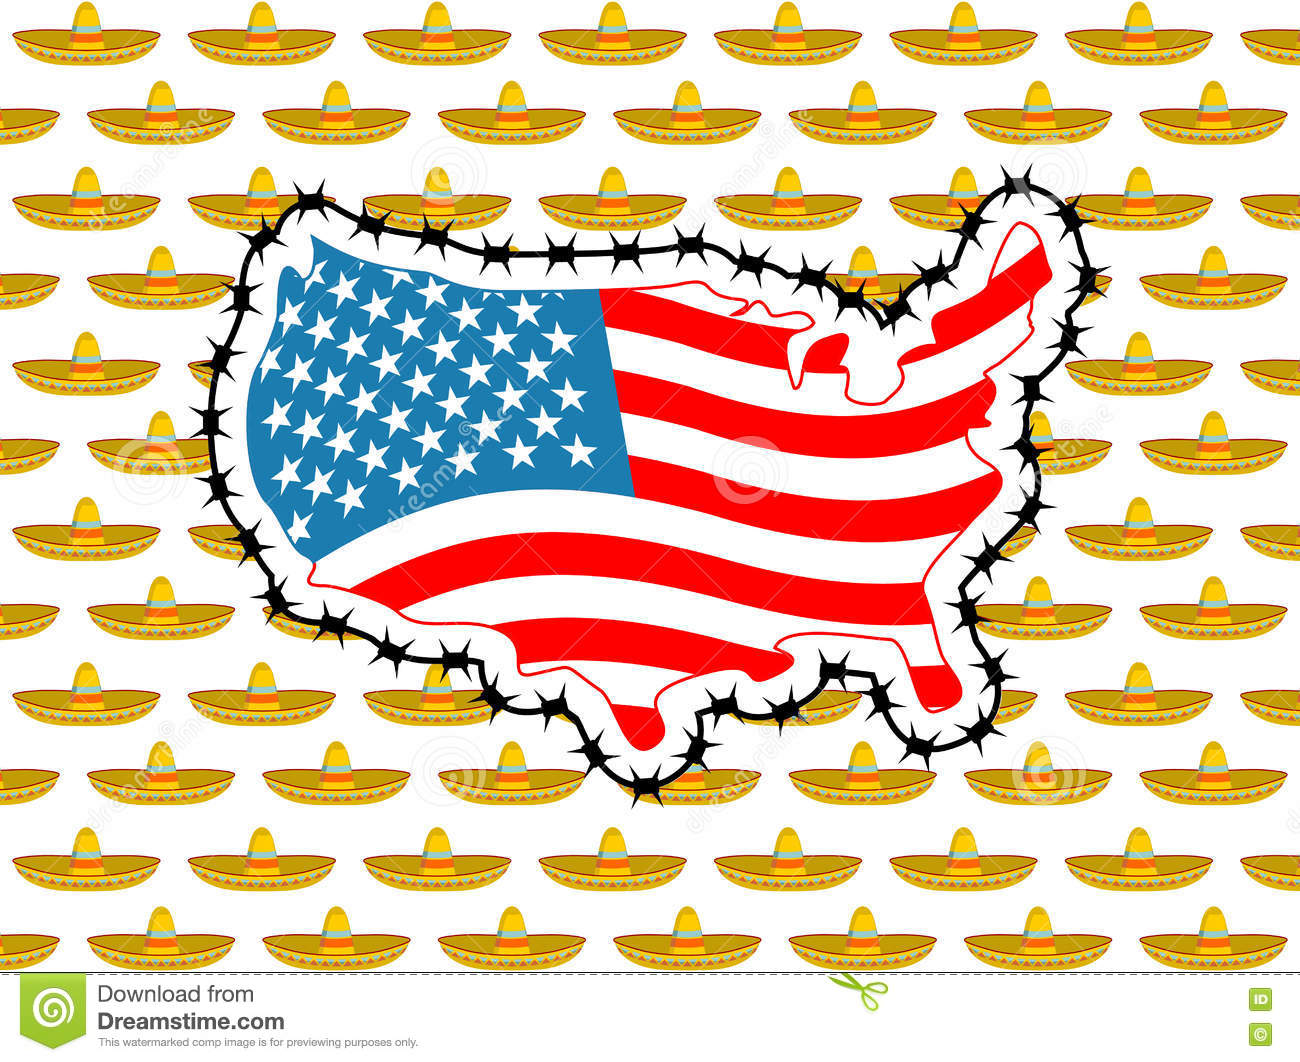 US Closes Border With Mexico. Stop Sombrero. Map Of America ... on united states flag border, united states flaf, american flag, united states flag soccer, united states flag with eagle, united states flag drawing, chiapas state flag, united states america flag, 1830 united states flag, united states flag 1861, united states flag history, londonderry ireland flag, united states national flag, united states flag background, mexican flag, united states flag waving, united states flag texture, united states post flag, united states flag code, united states army flag,